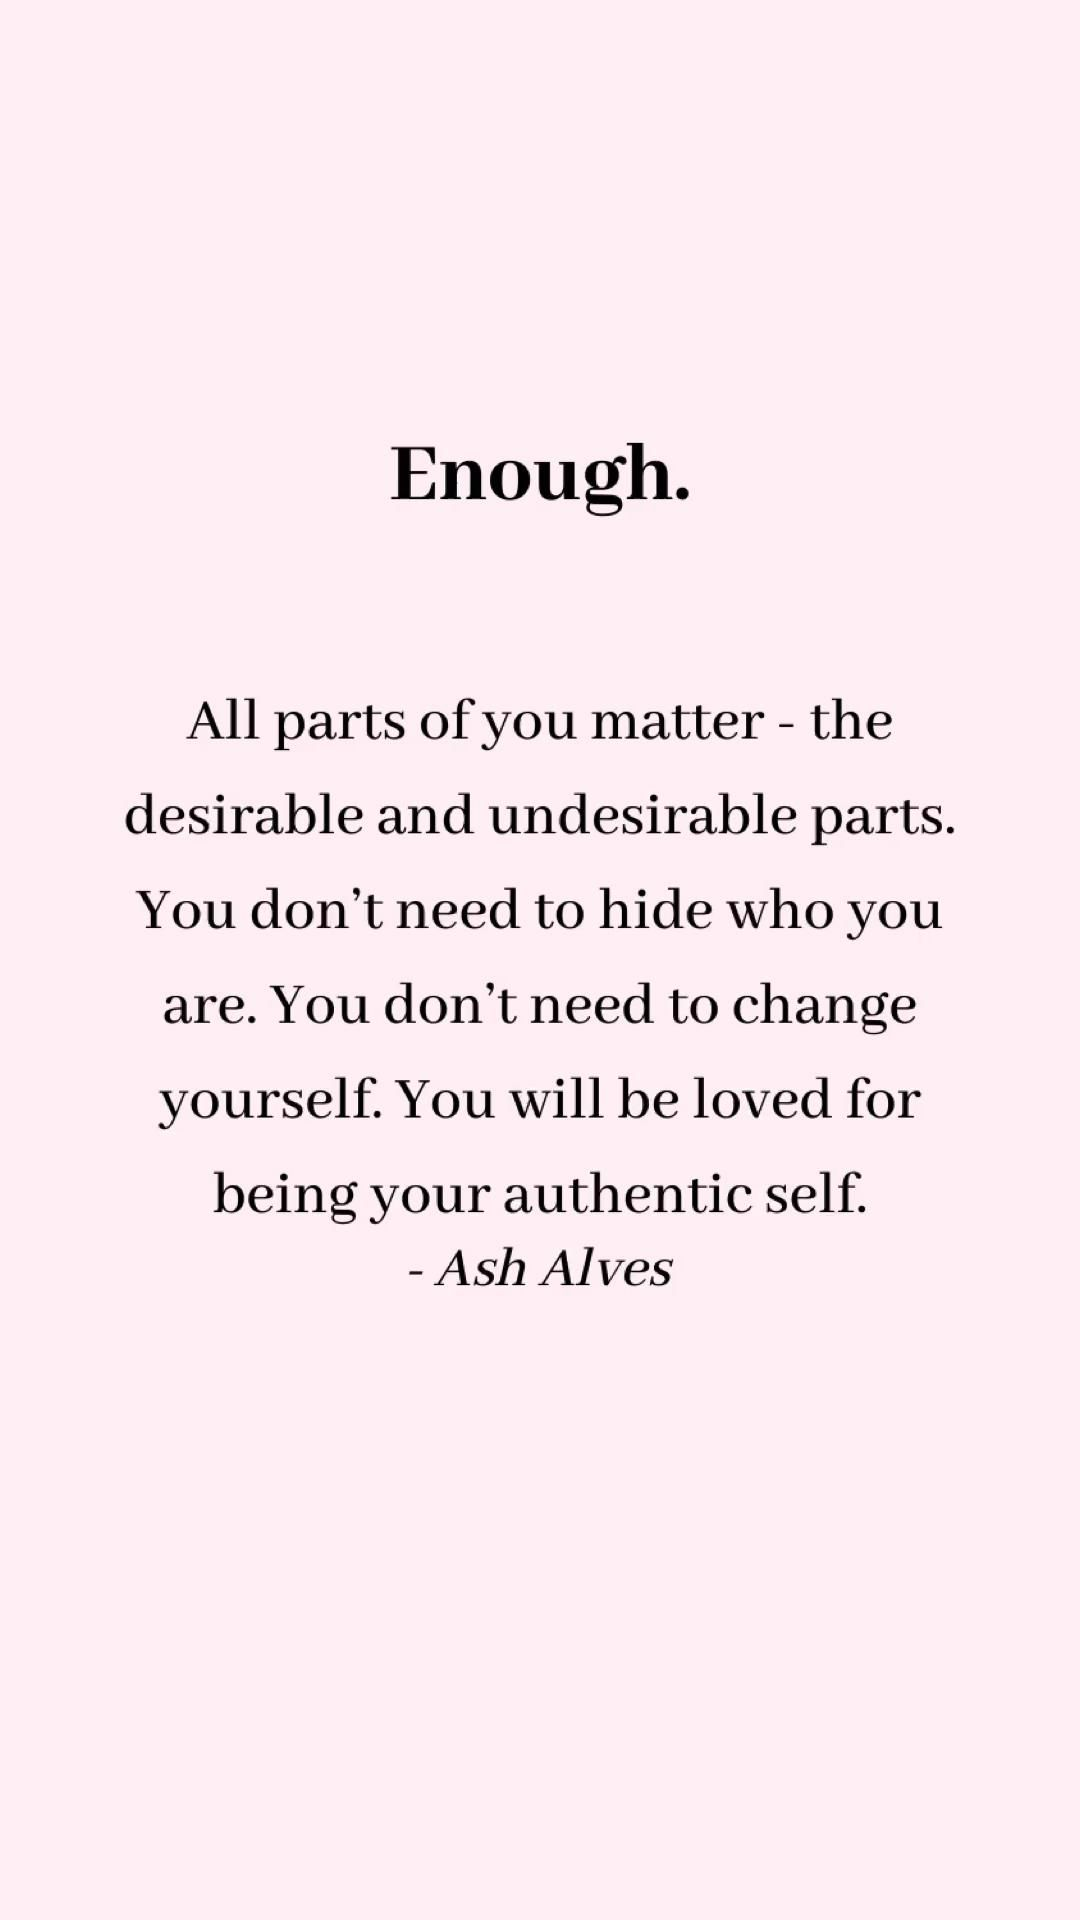 You are enough. Don't let anyone tell you otherwise 💕